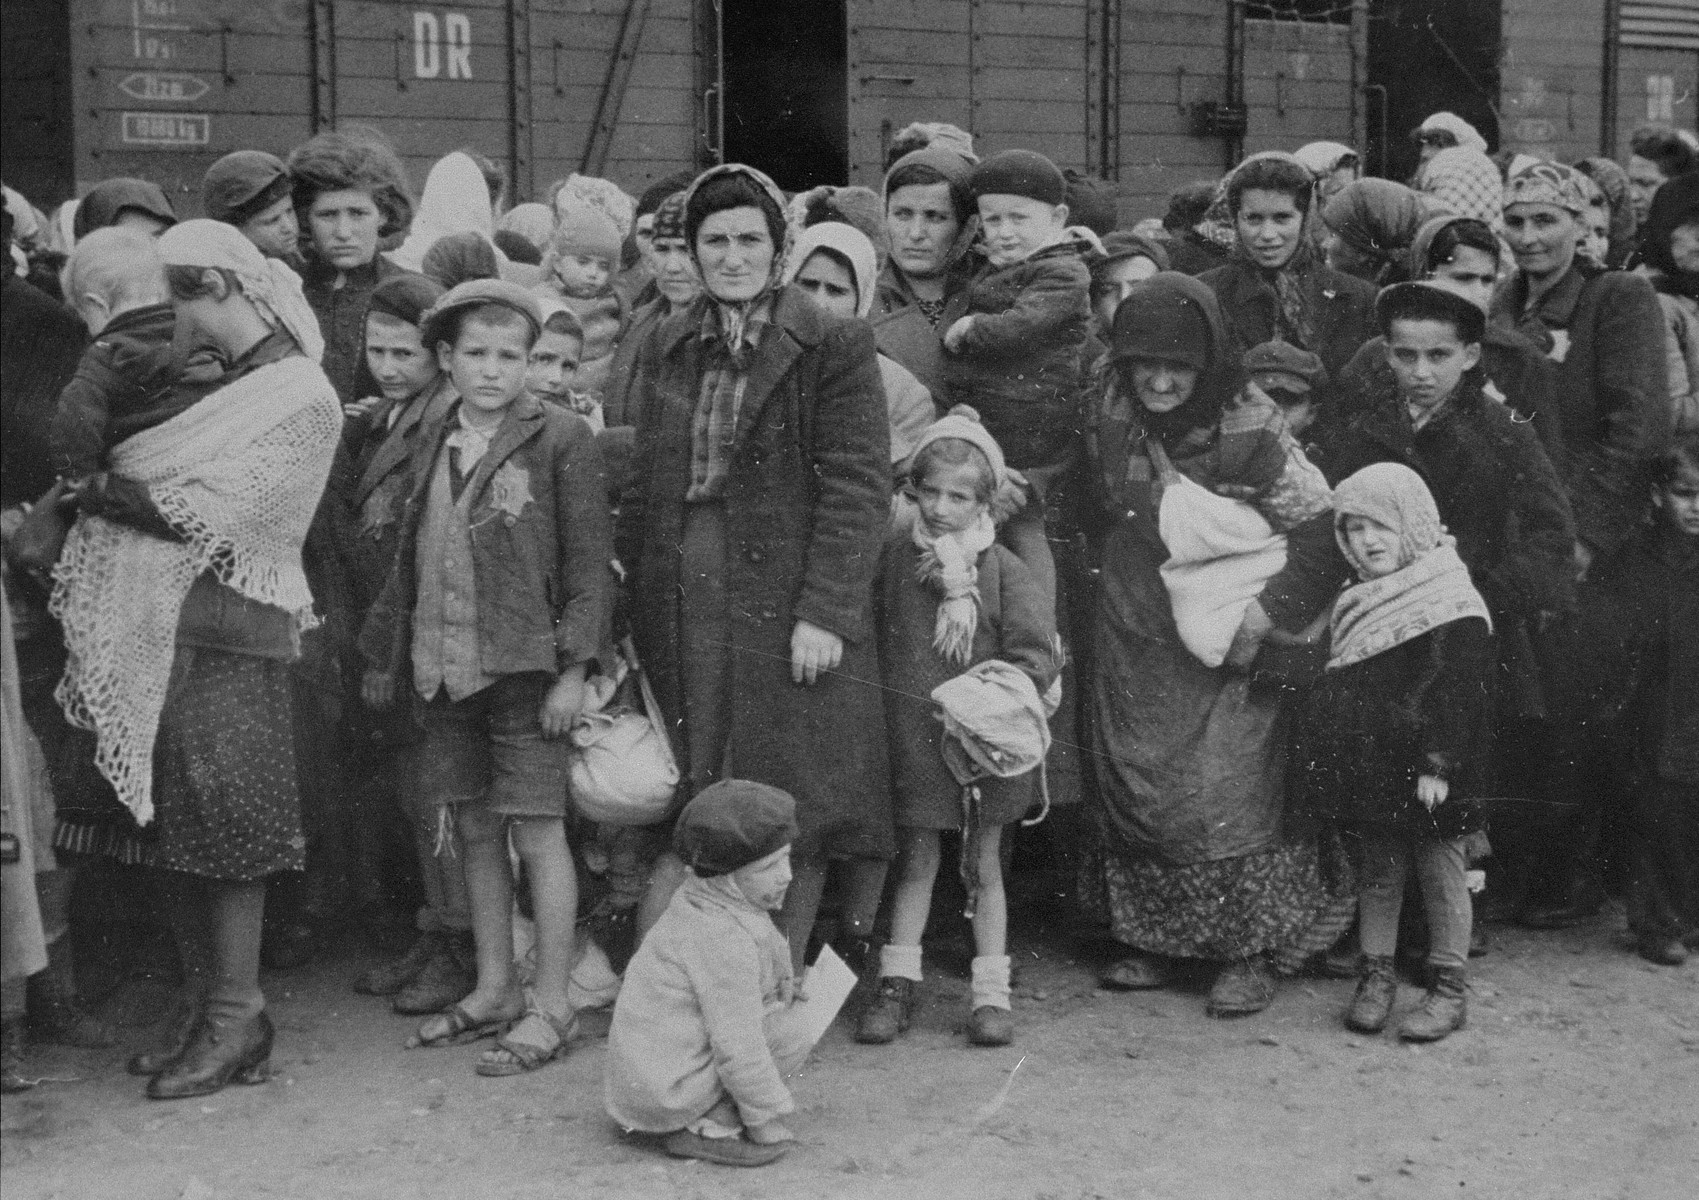 Jewish women and children from Subcarpathian Rus await selection on the ramp at Auschwitz-Birkenau.  Among those pictured are Irina Berkovits (age 37) and her son Adalbert (age 5), both perished.  Also pictured are Hajnal Klein and her four daughters Lili (age 18), Herczi (age 15), Renee (age 12) and Iren (age 7).  Hajnal, Renee and Iren were killed upon arrival.  Lili and Herczi survived.